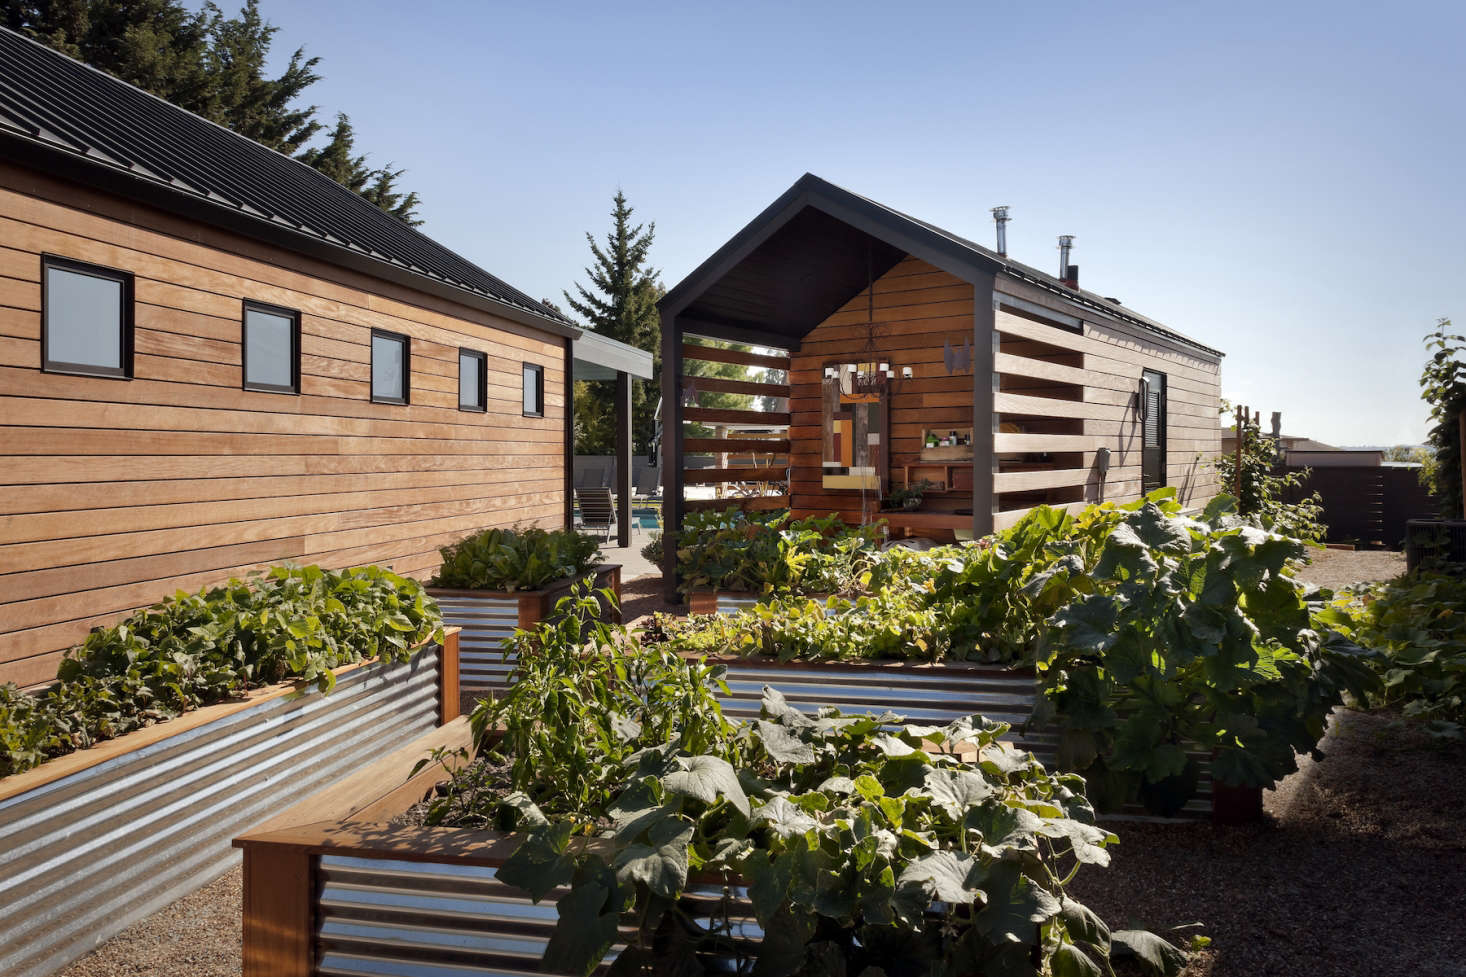 The homeowners wanted a vegetable garden made of corrugated steel beds, so the design team framed them in ipe wood to match the media room and outbuildings.